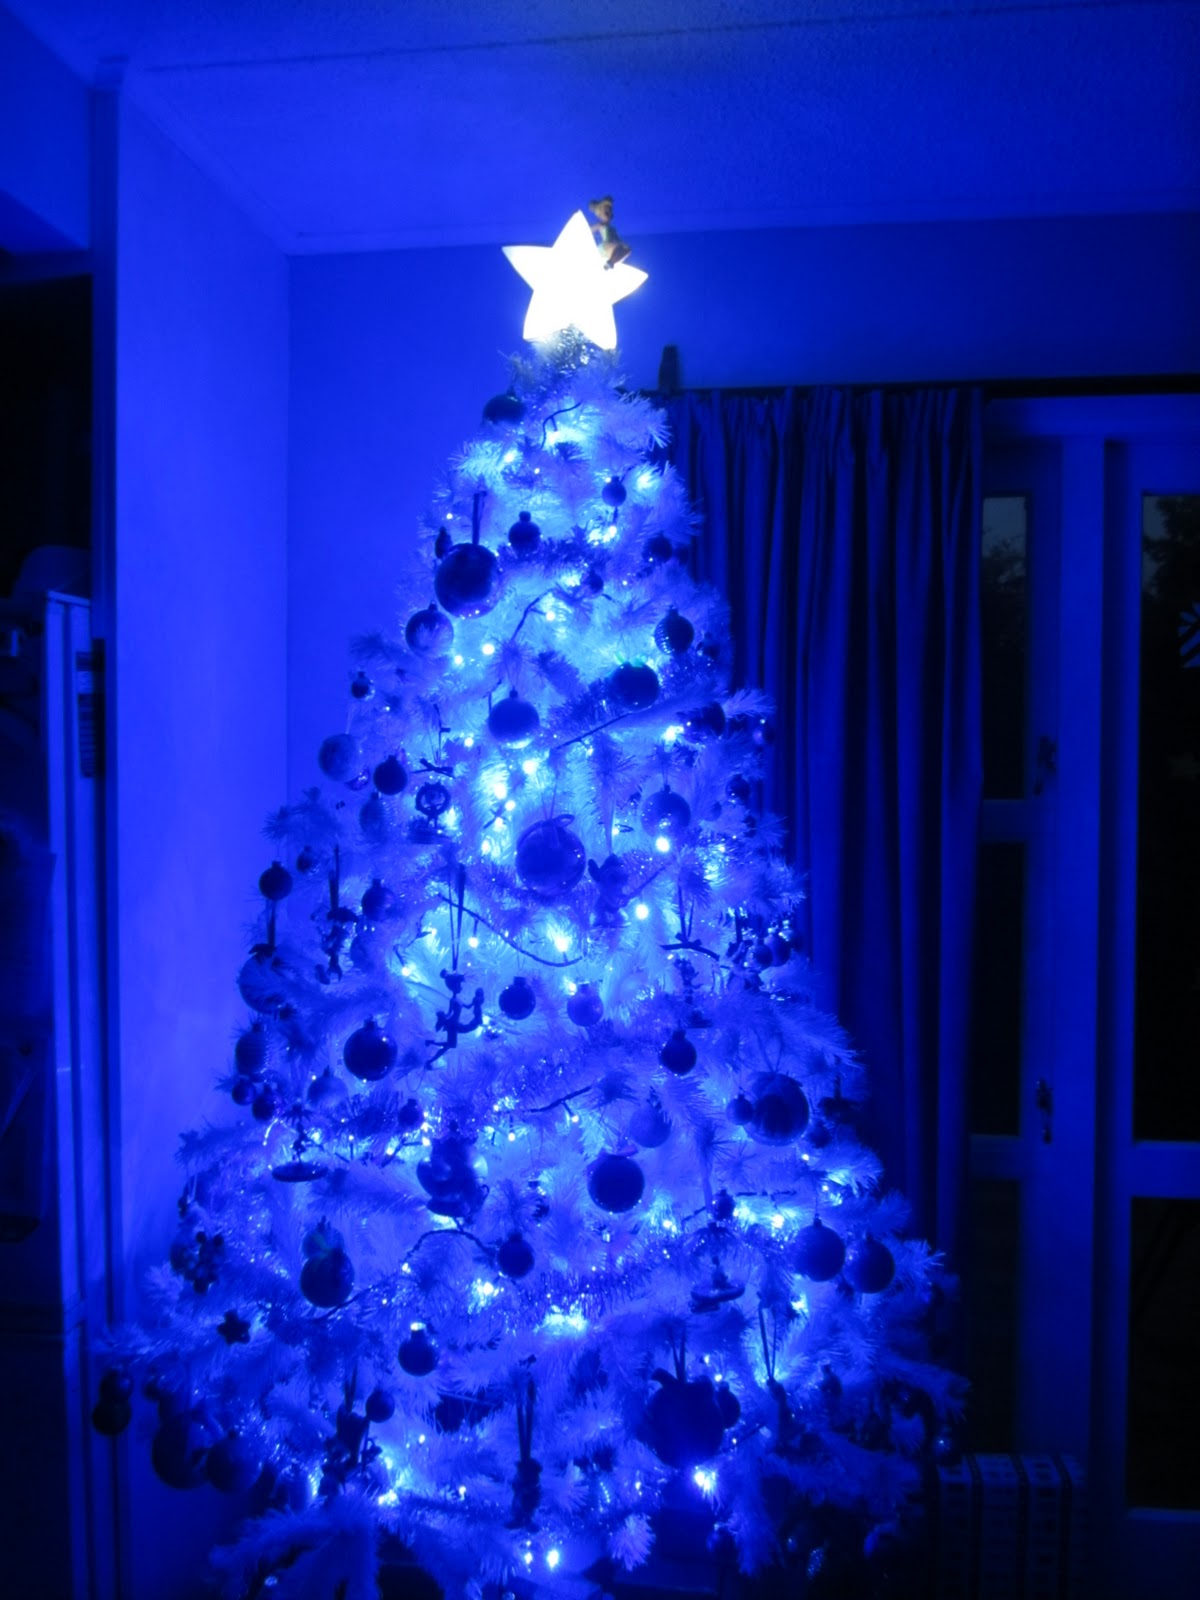 White christmas tree with blue and green decorations - photo#24